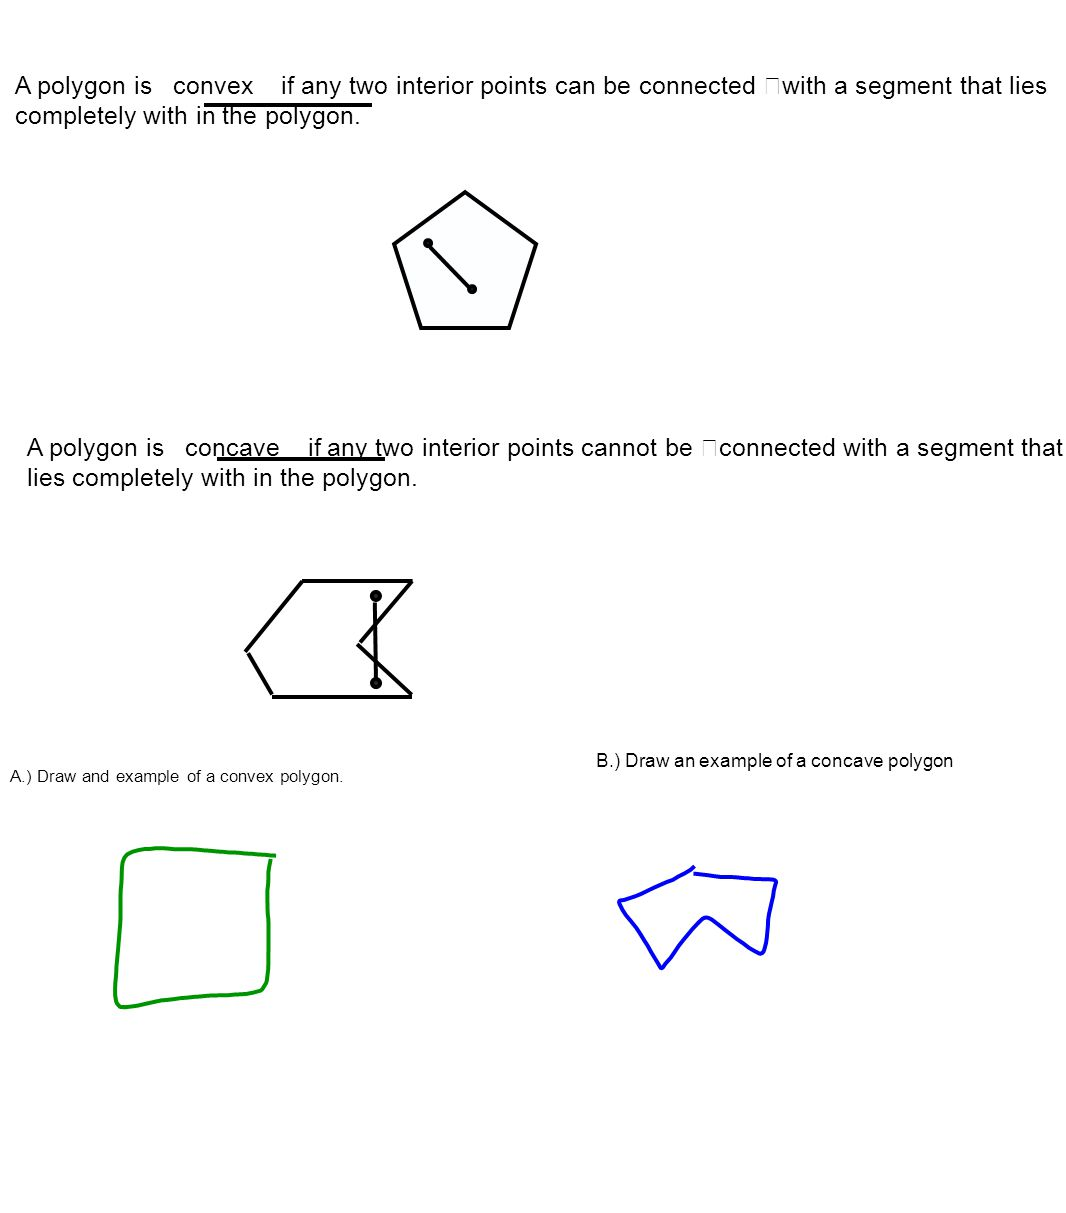 A polygon is convex if any two interior points can be connected with a segment that lies completely with in the polygon.